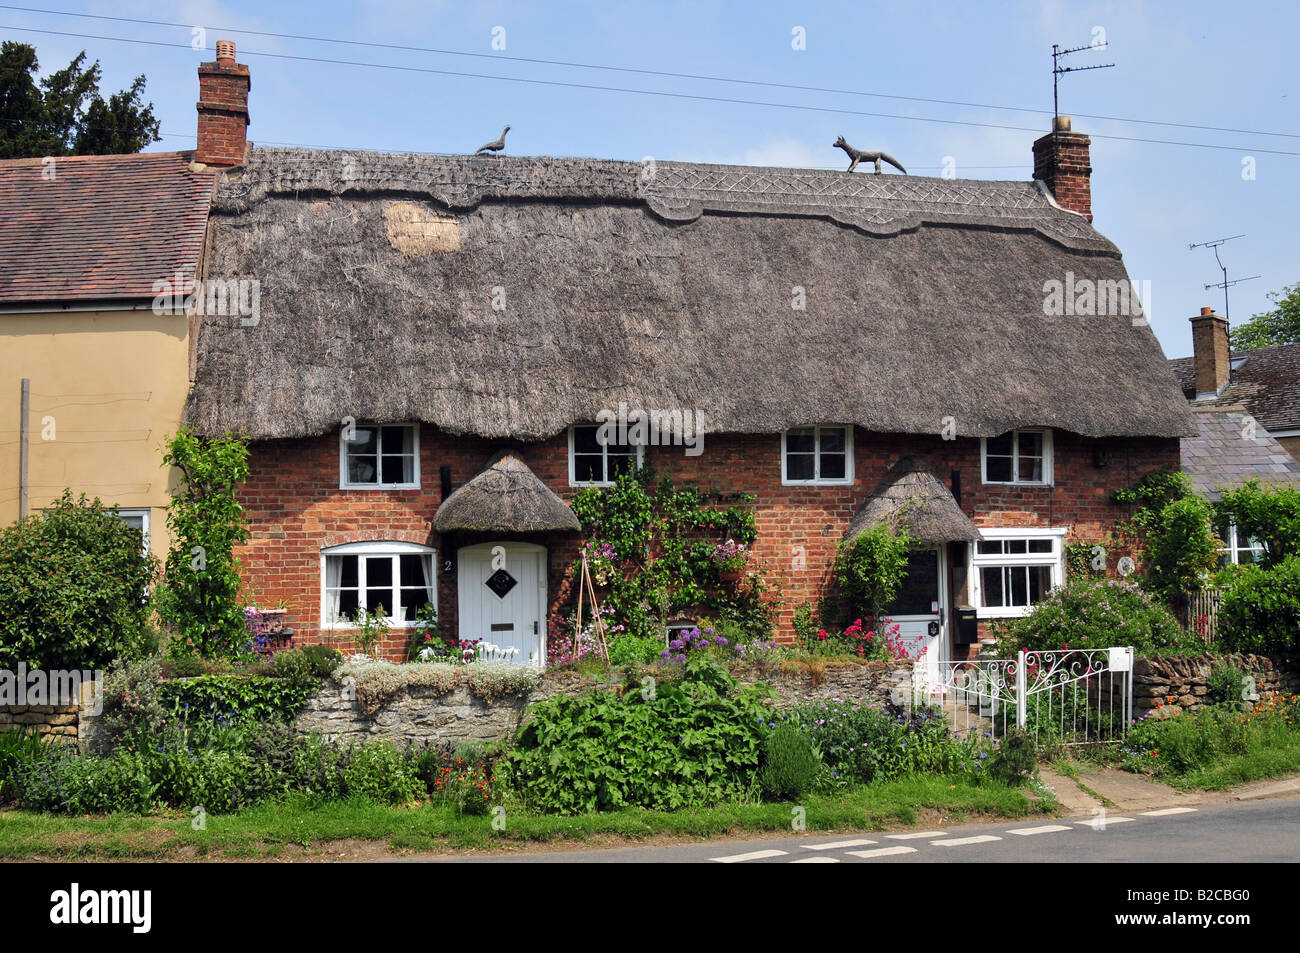 Thatched house at Cropredy, Oxfordshire with fox and peacock figures on top of the roof. - Stock Image